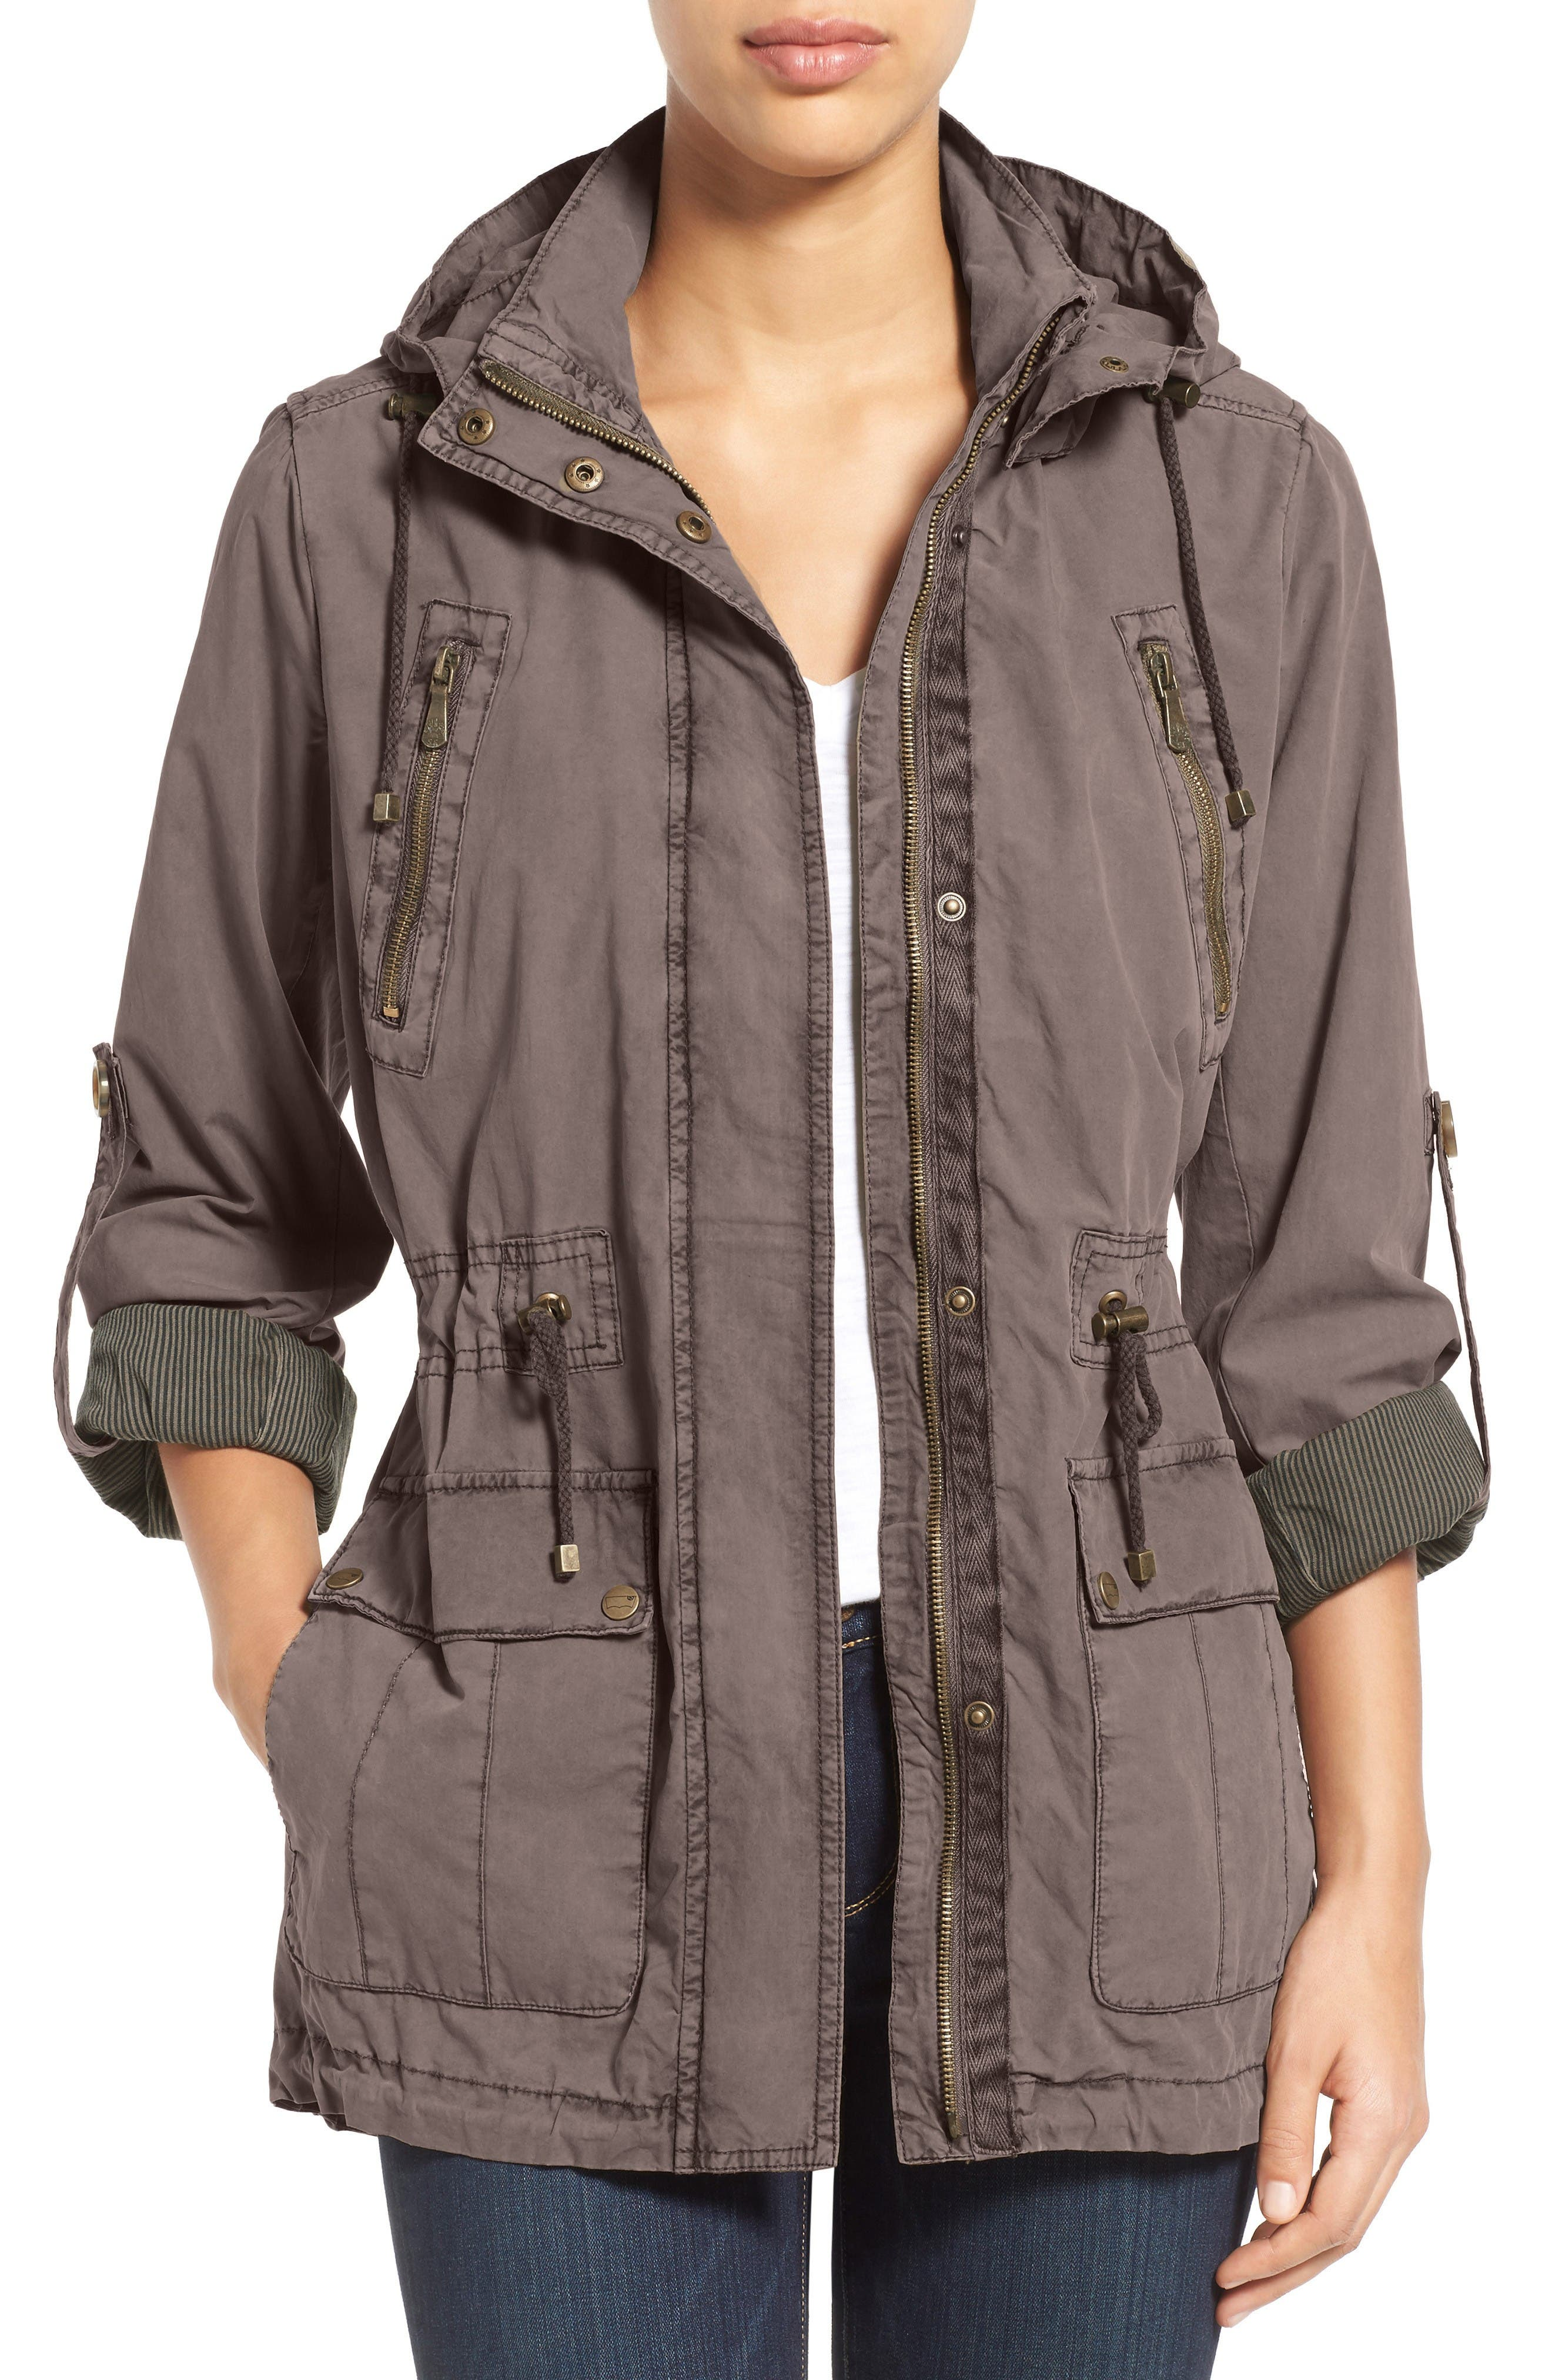 Parachute Hooded Cotton Utility Jacket,                             Main thumbnail 1, color,                             GREY